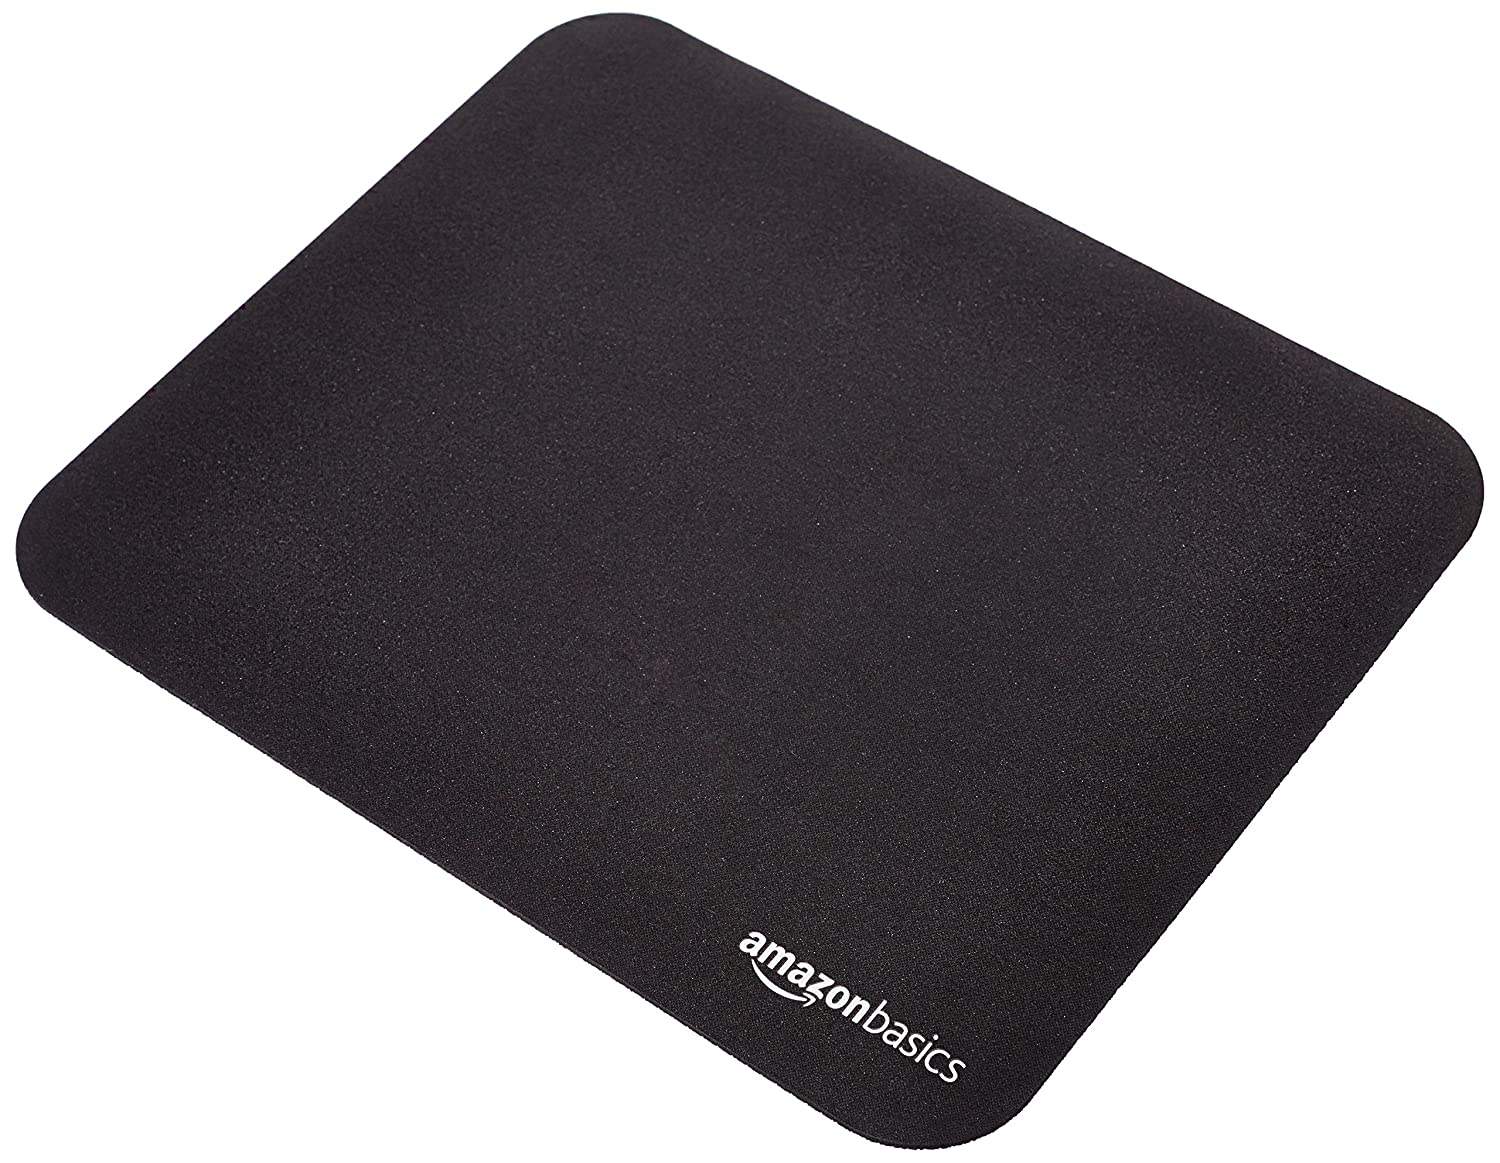 AmazonBasics Mini Gaming Mouse Pad